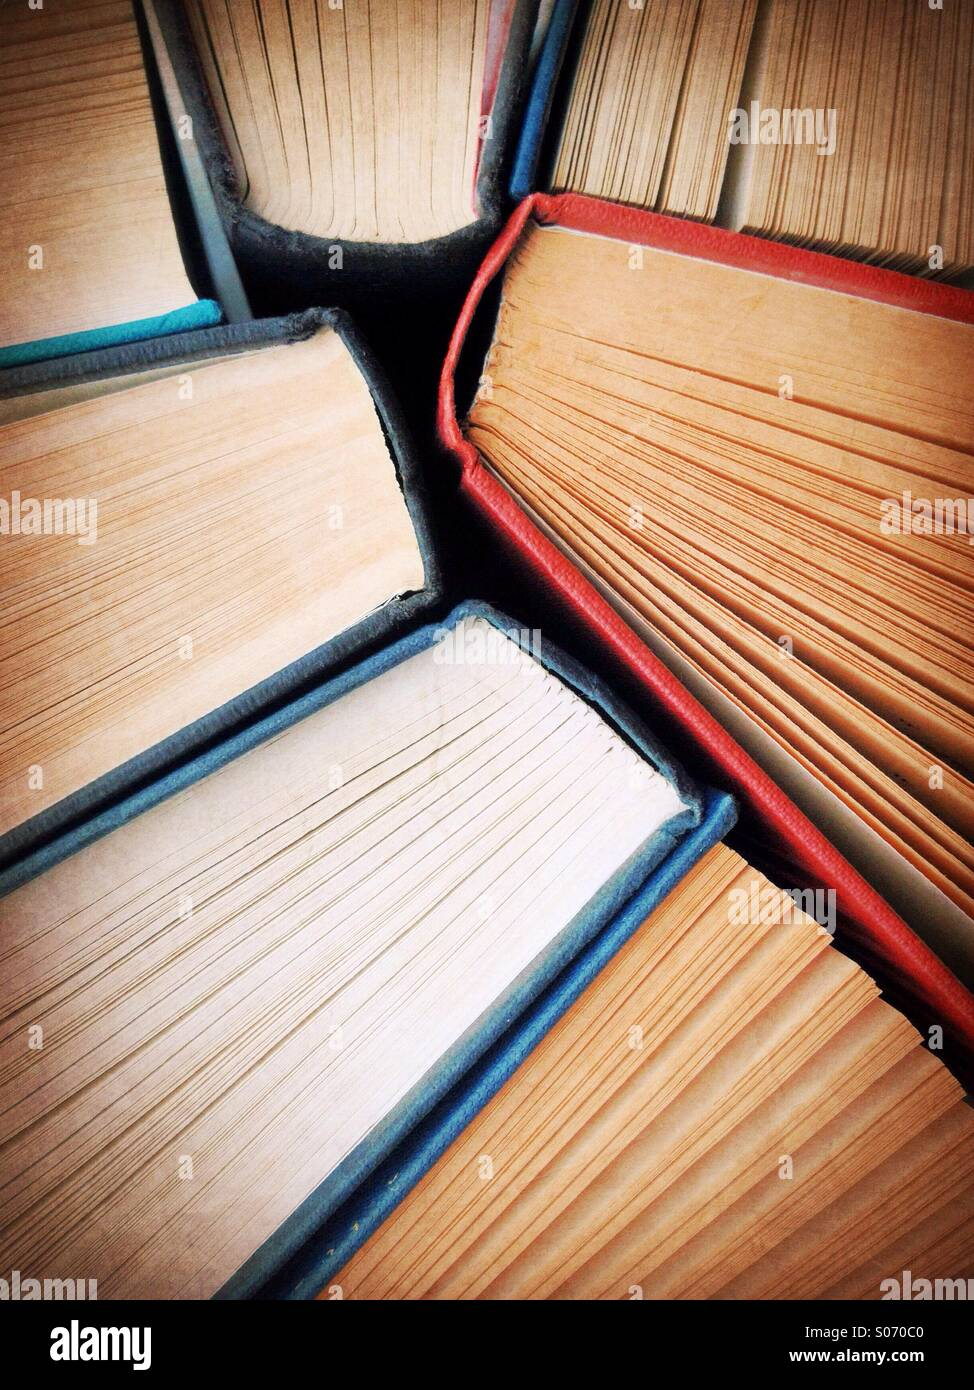 Old hardback books from above with wide angle. Made with a smartphone camera - Stock Image